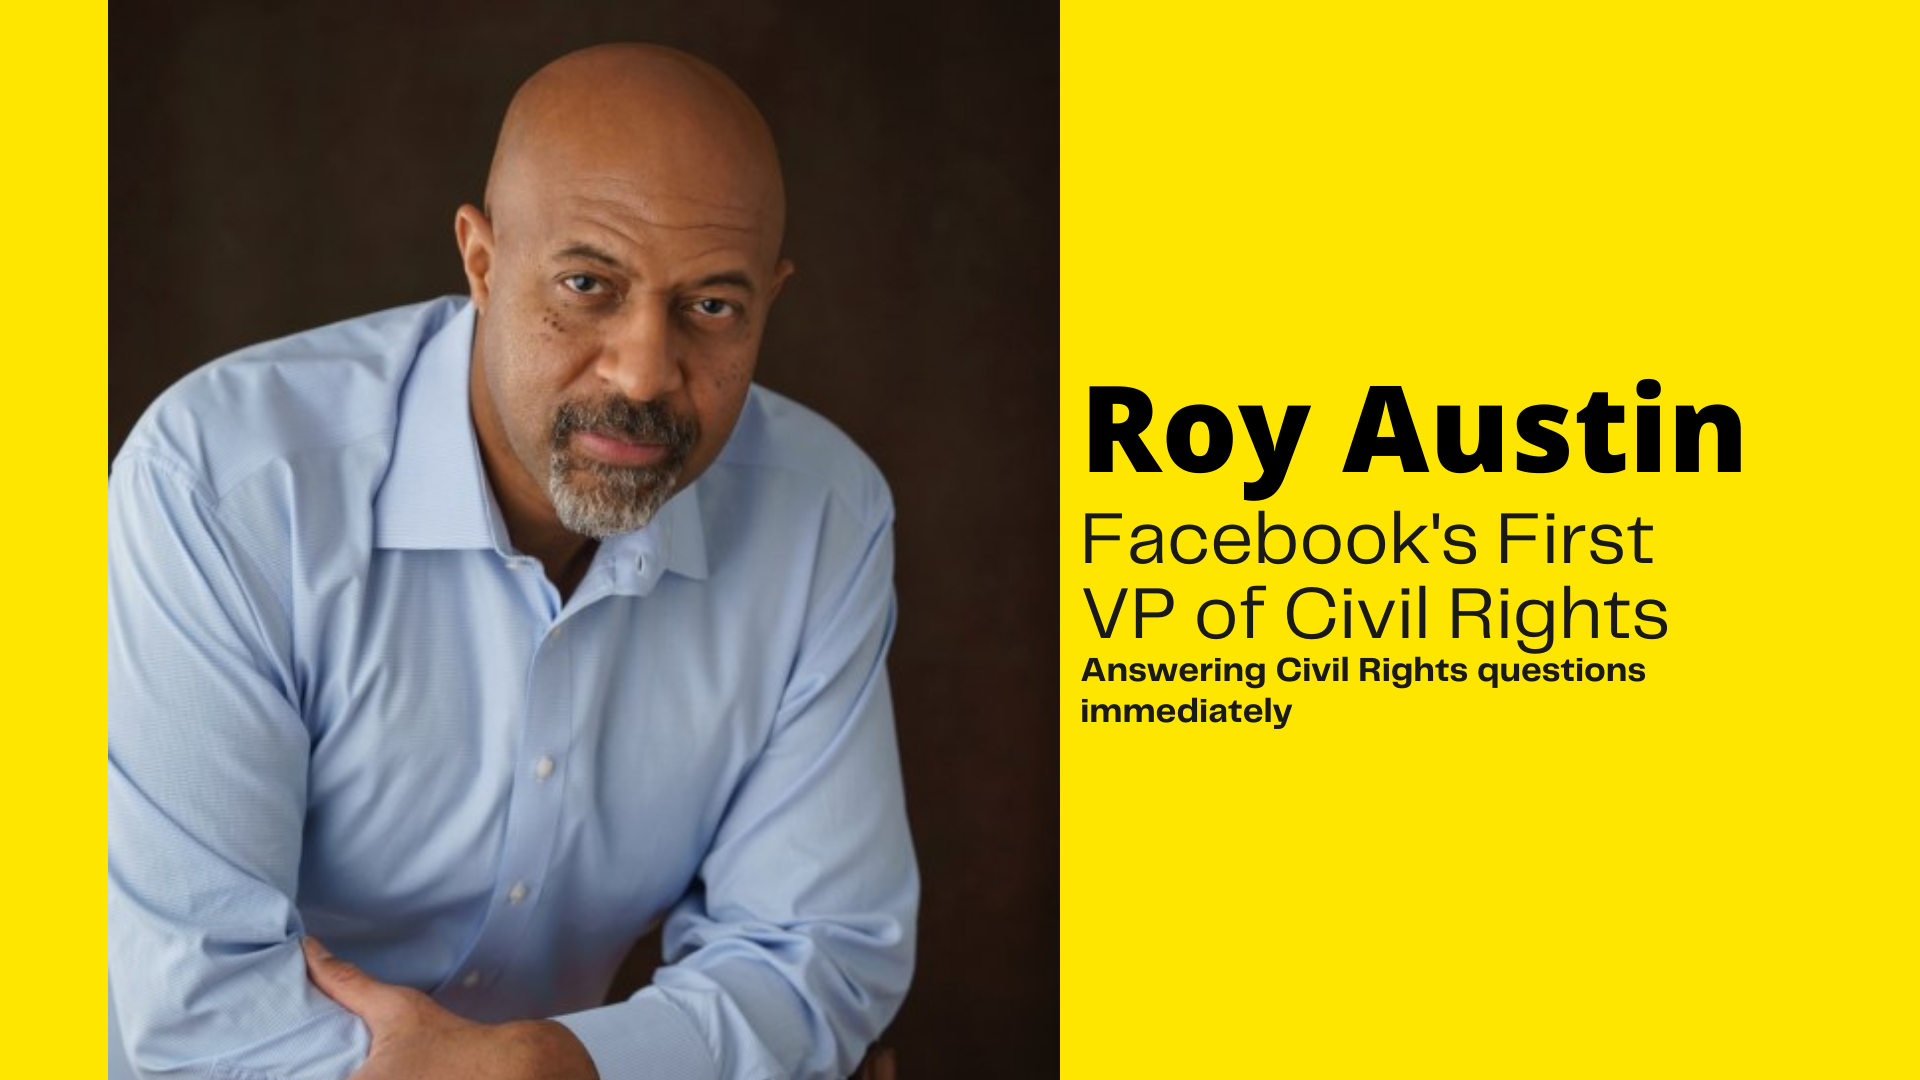 Renowned Civil Rights Attorney and Author Roy Austin Joins Facebook as VP of Civil Rights